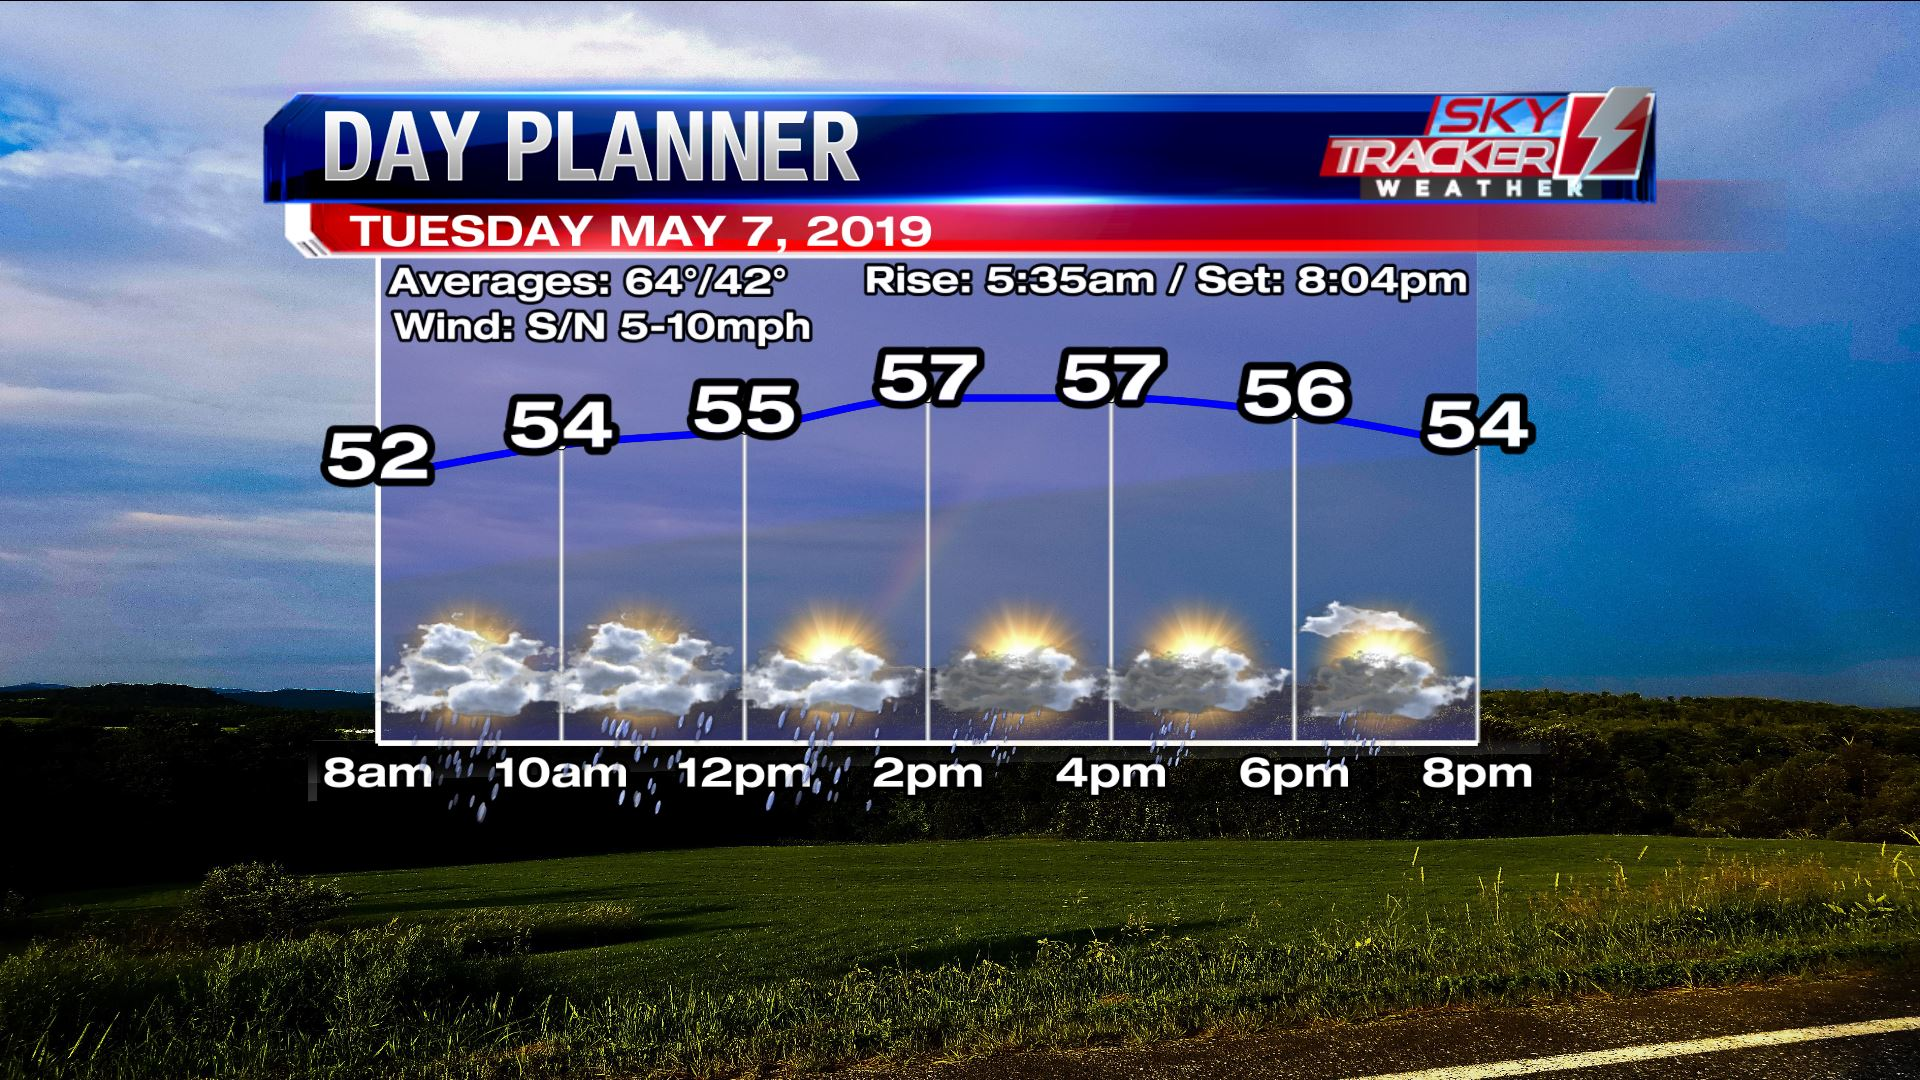 Planner for Tuesday May 7 2019